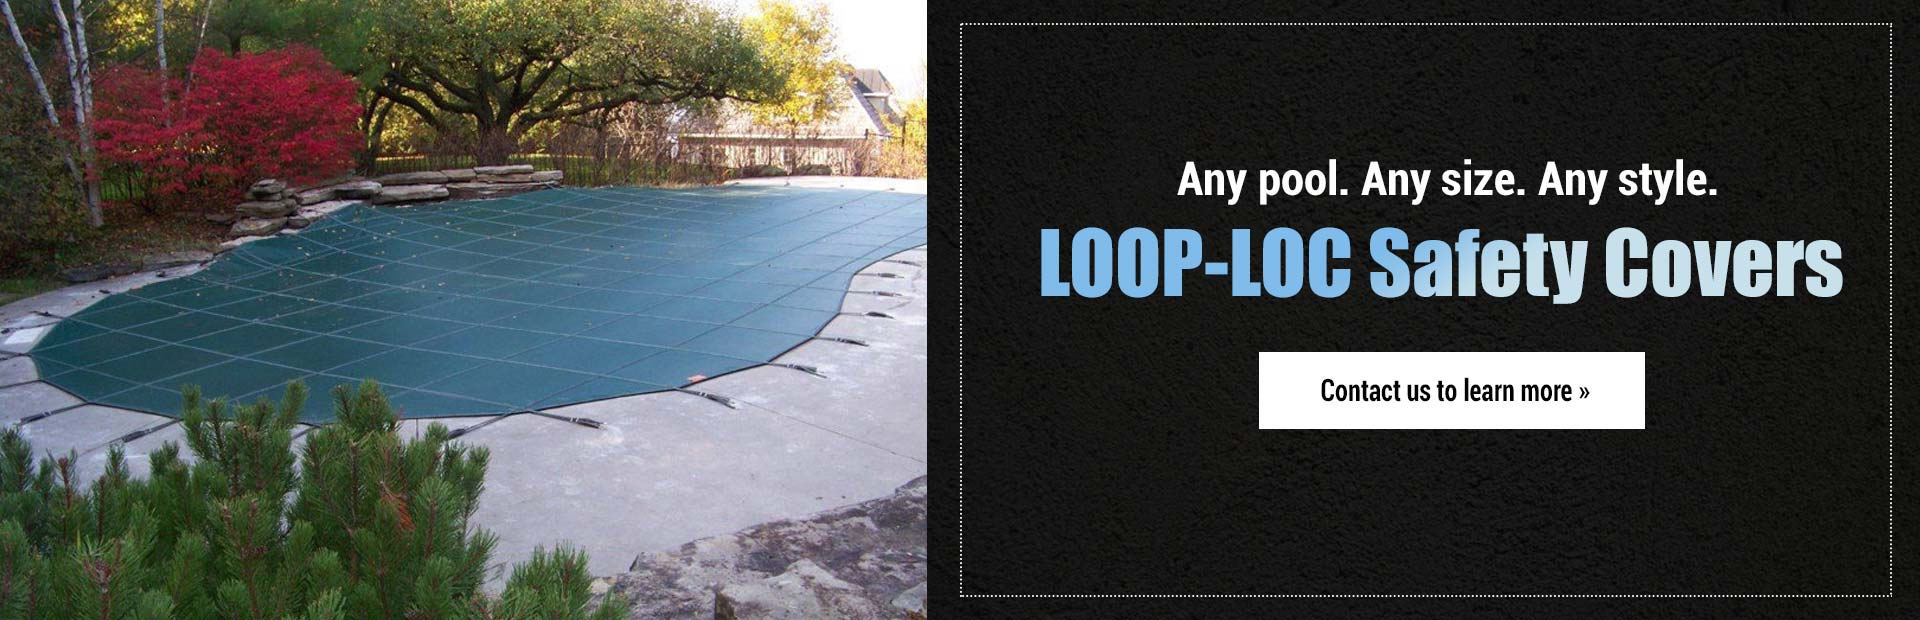 LOOP-LOC Safety Covers: Contact us to learn more.